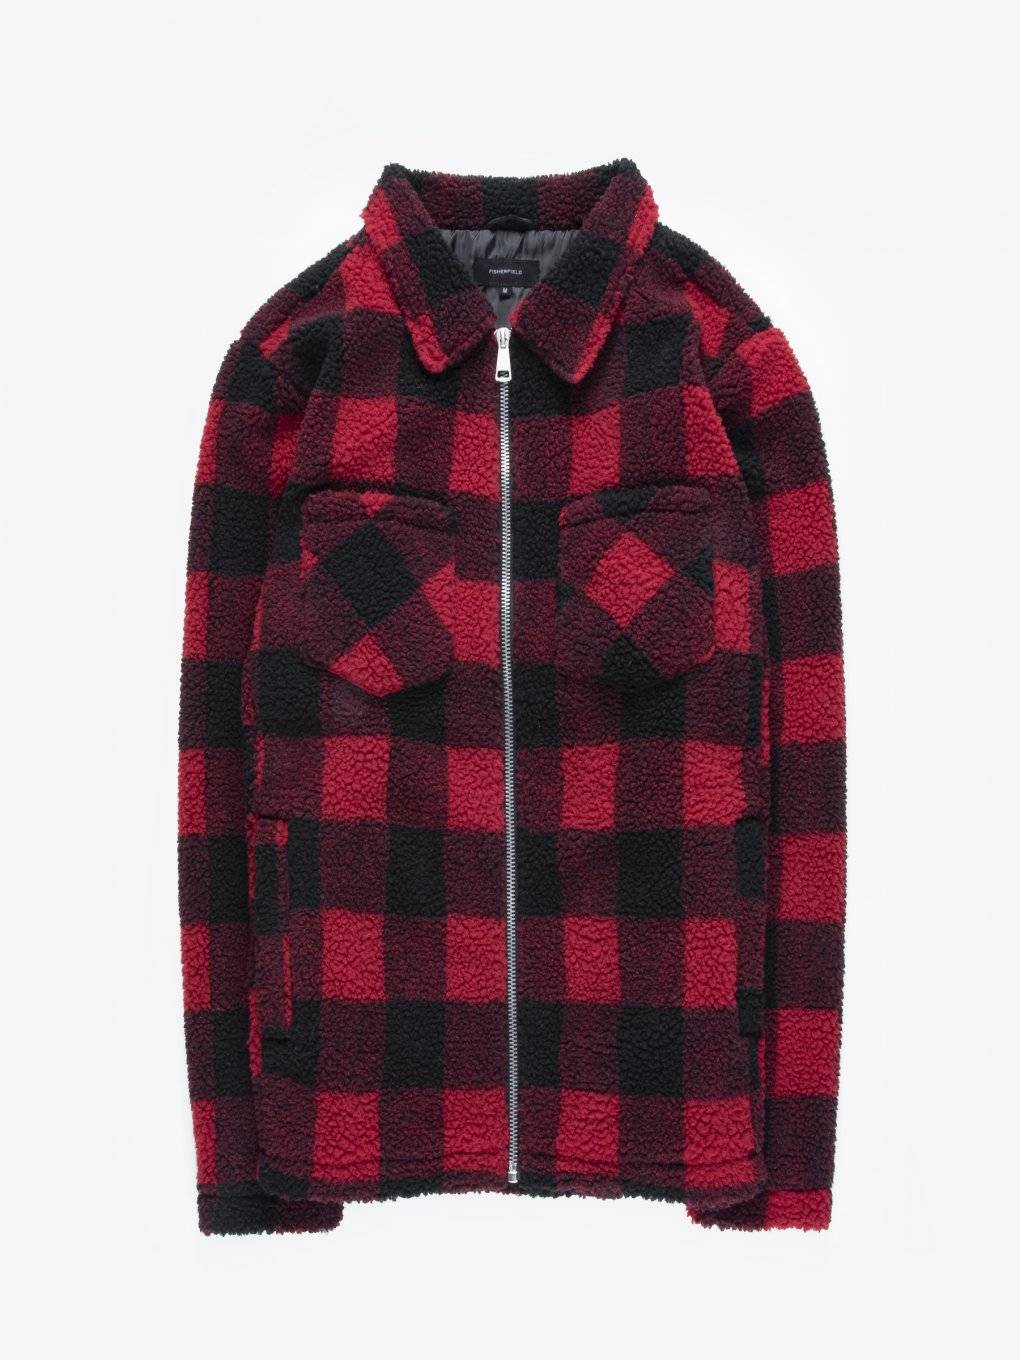 Plaid zip-up sweatshirt